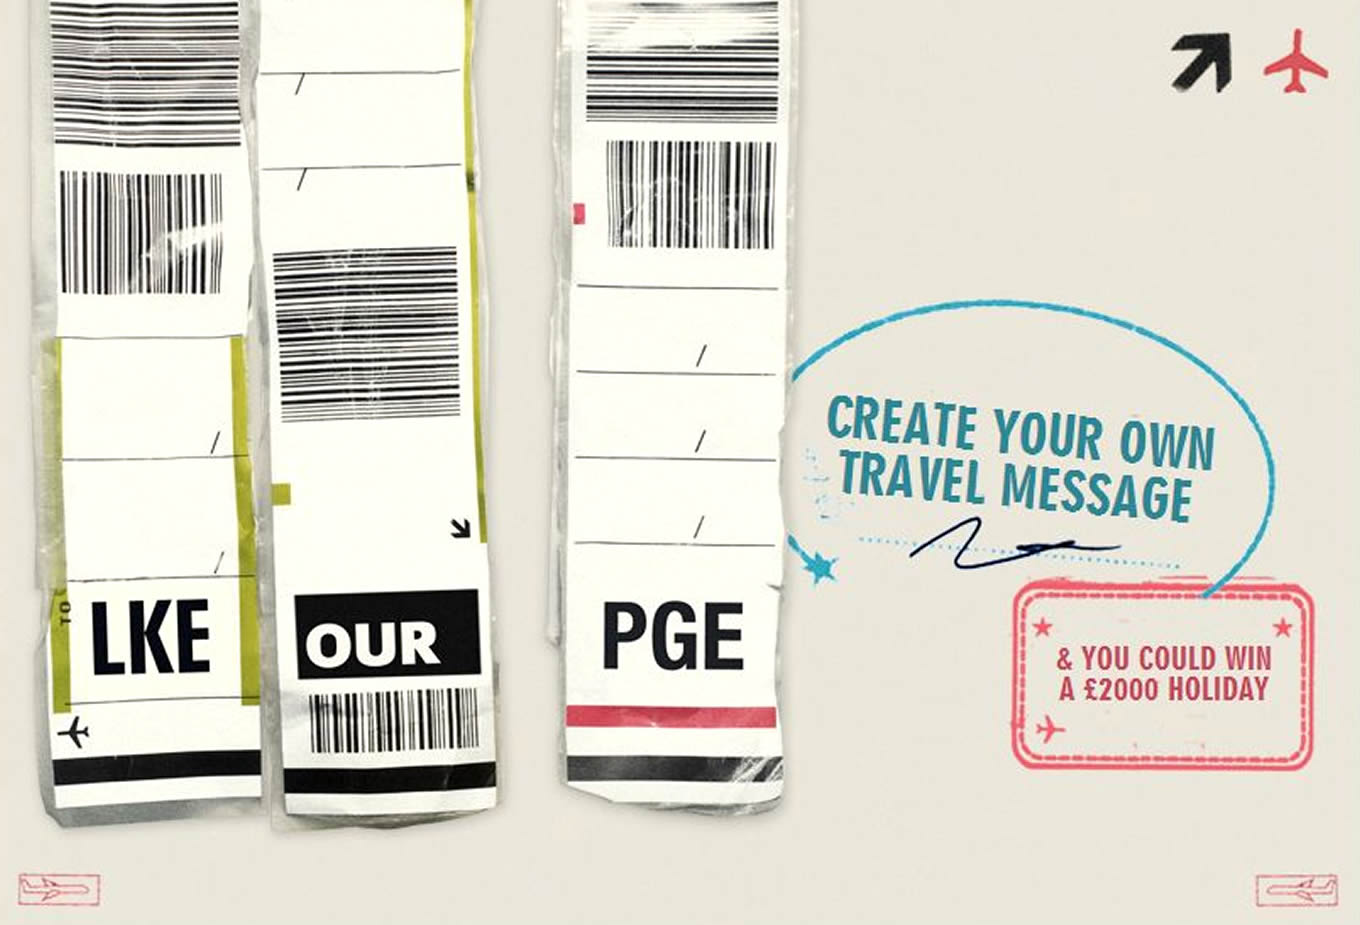 Online Facebook Competition, Luggage Tags Marketing Campaign by Expedia UK